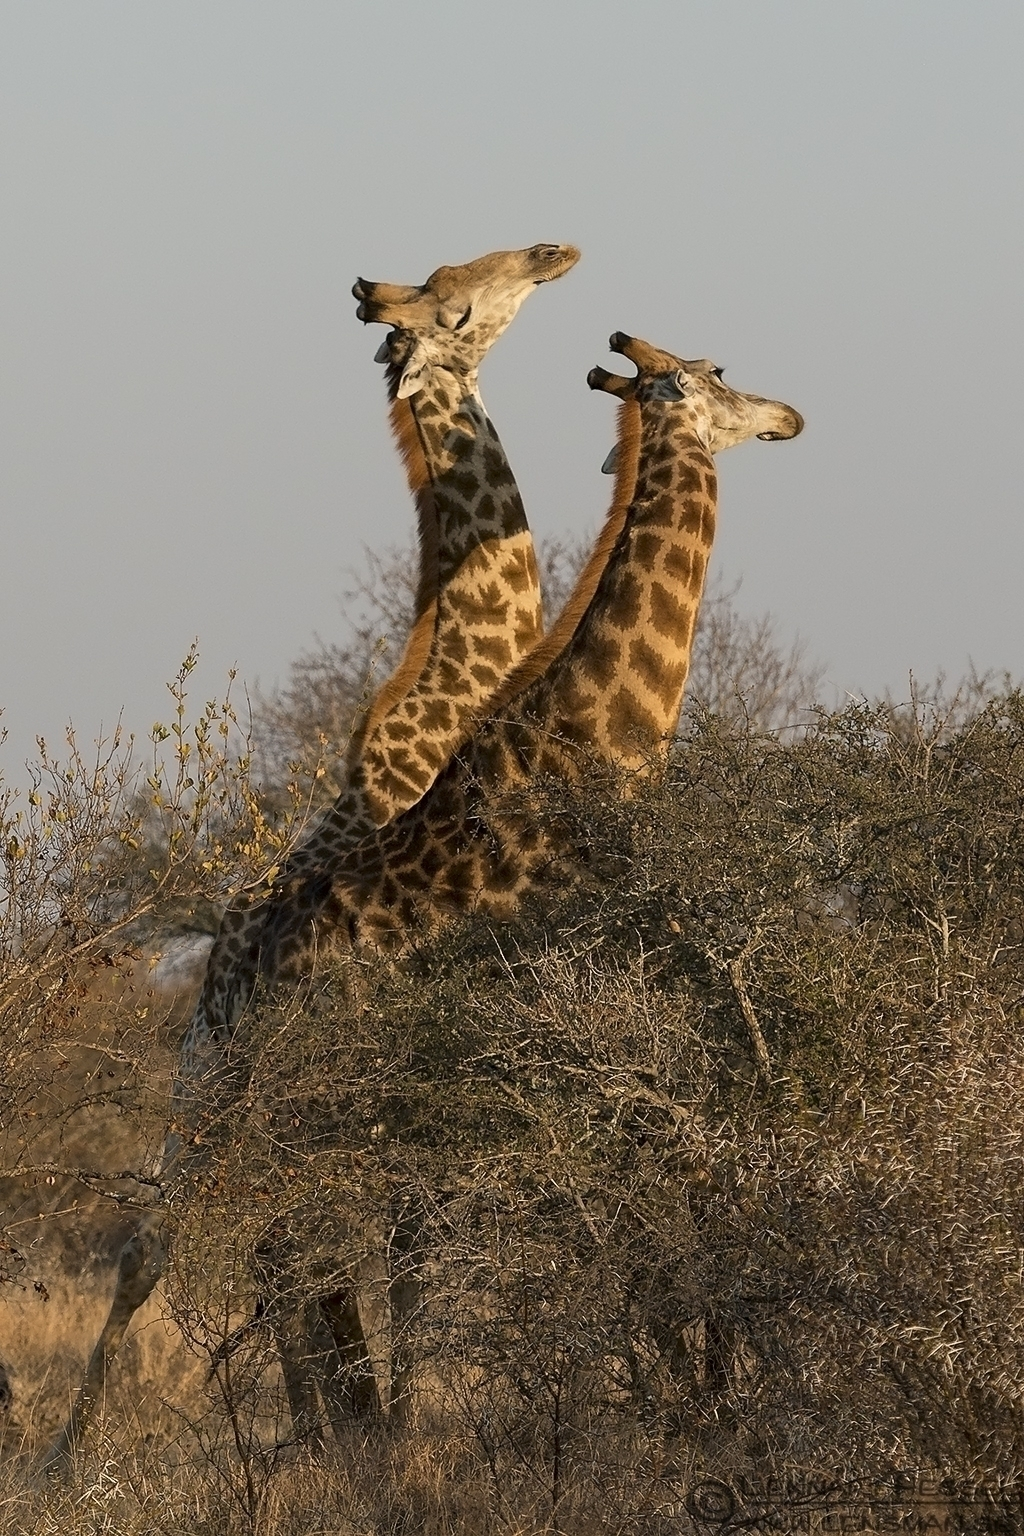 Fighting Giraffes Kruger National Park South Africa